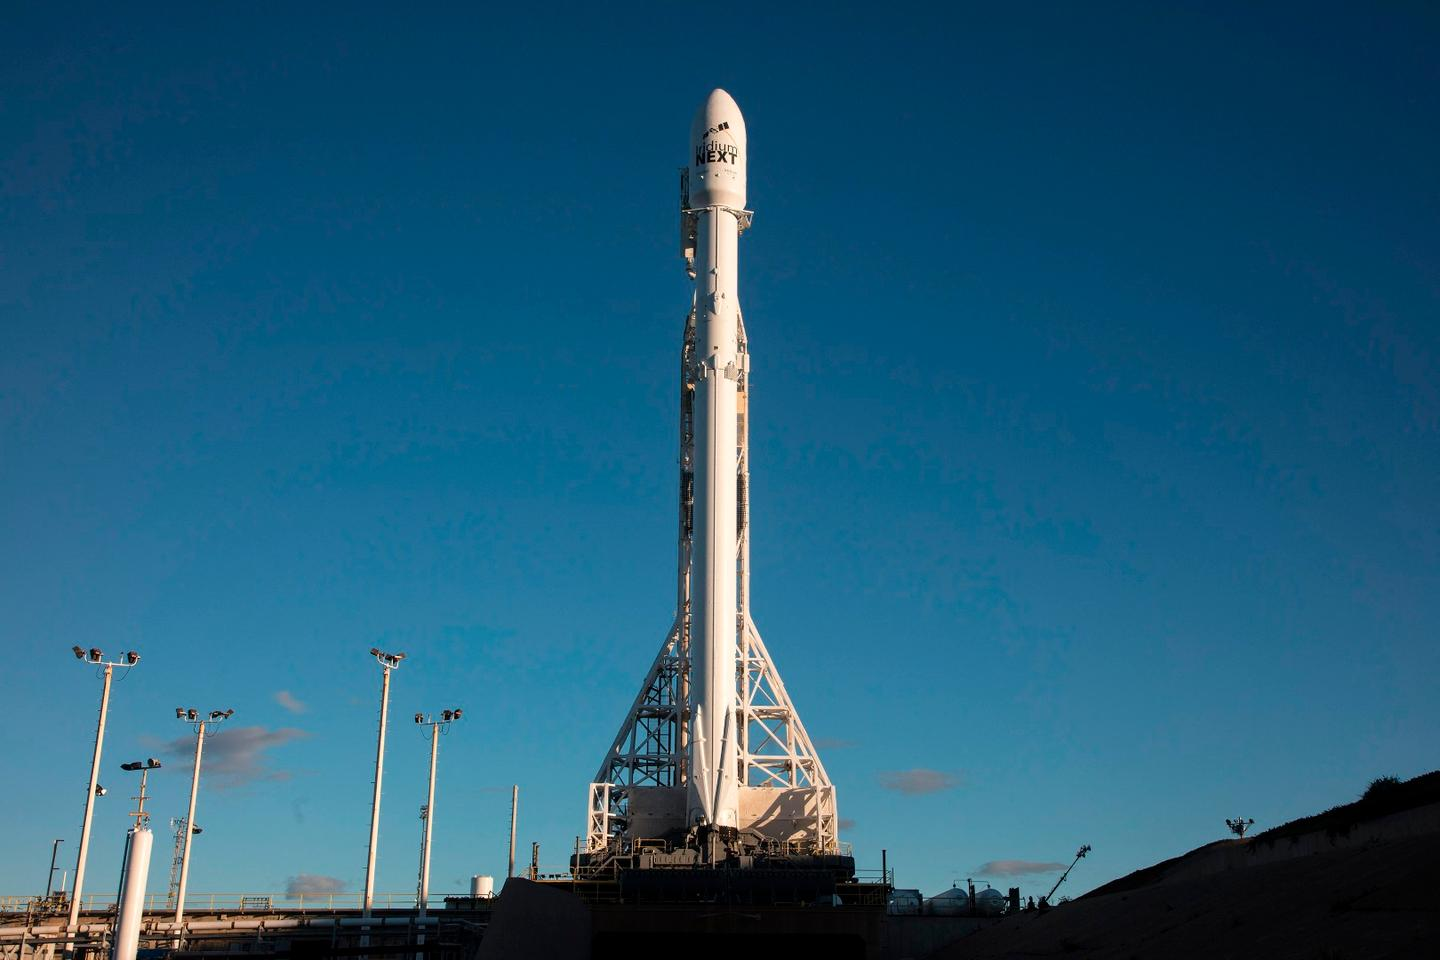 The Falcon 9 rocket ready and waiting